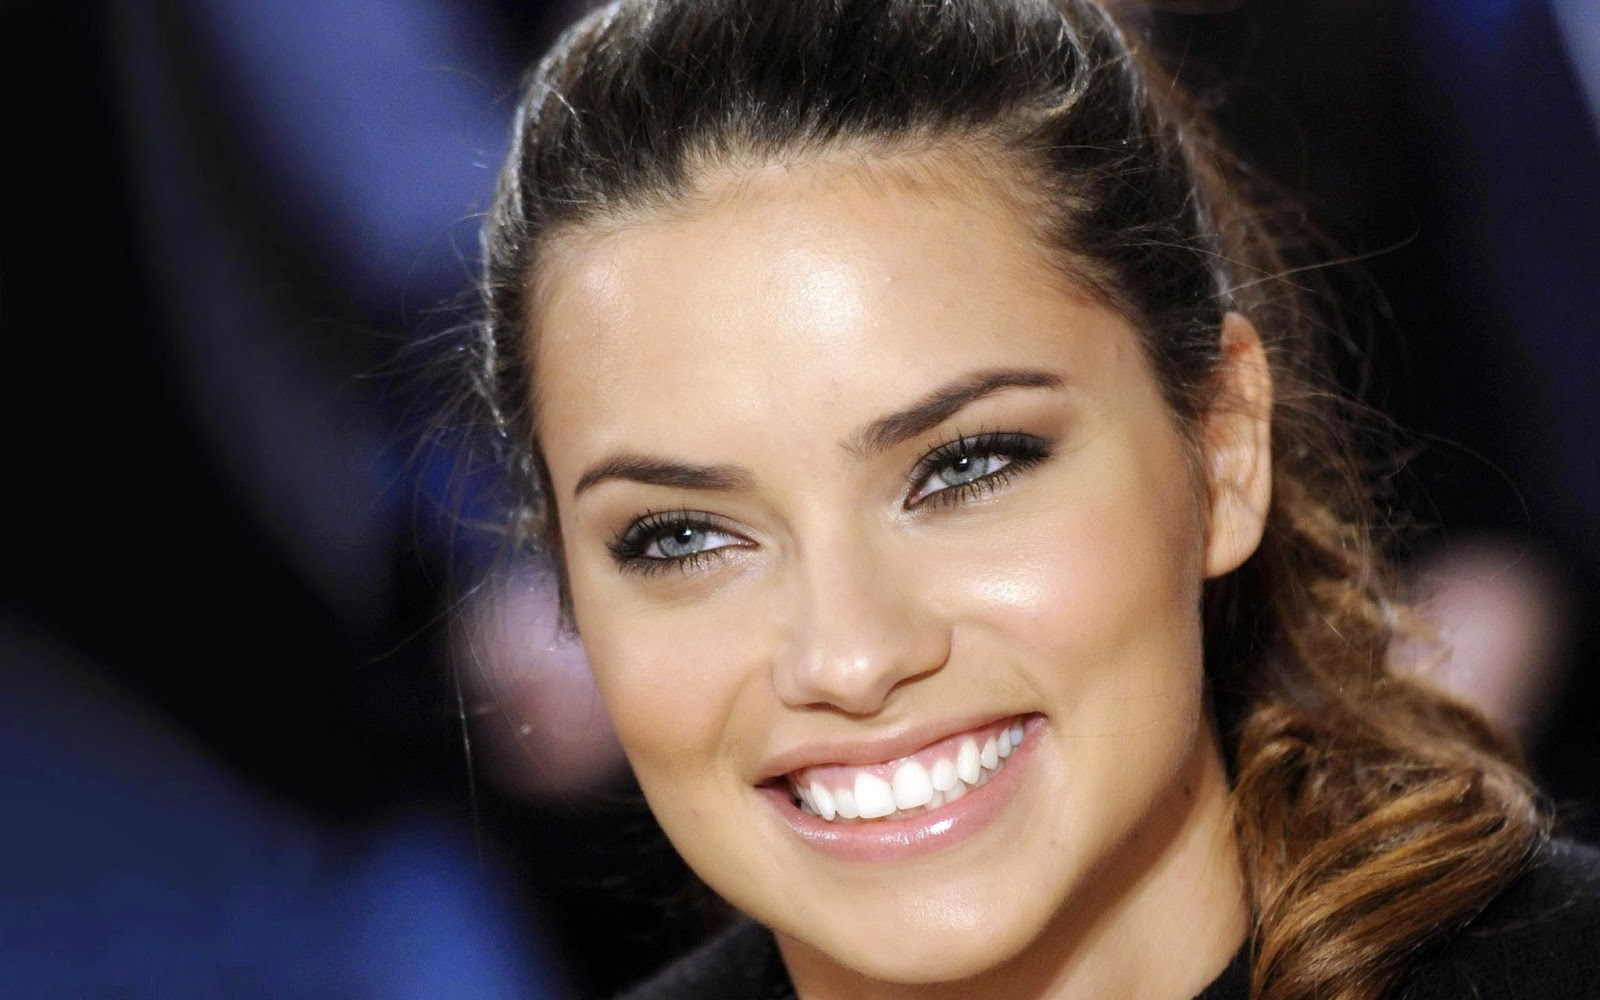 Every actress wallpapers adriana lima wallpapers free download adriana lima wallpapers free download voltagebd Image collections